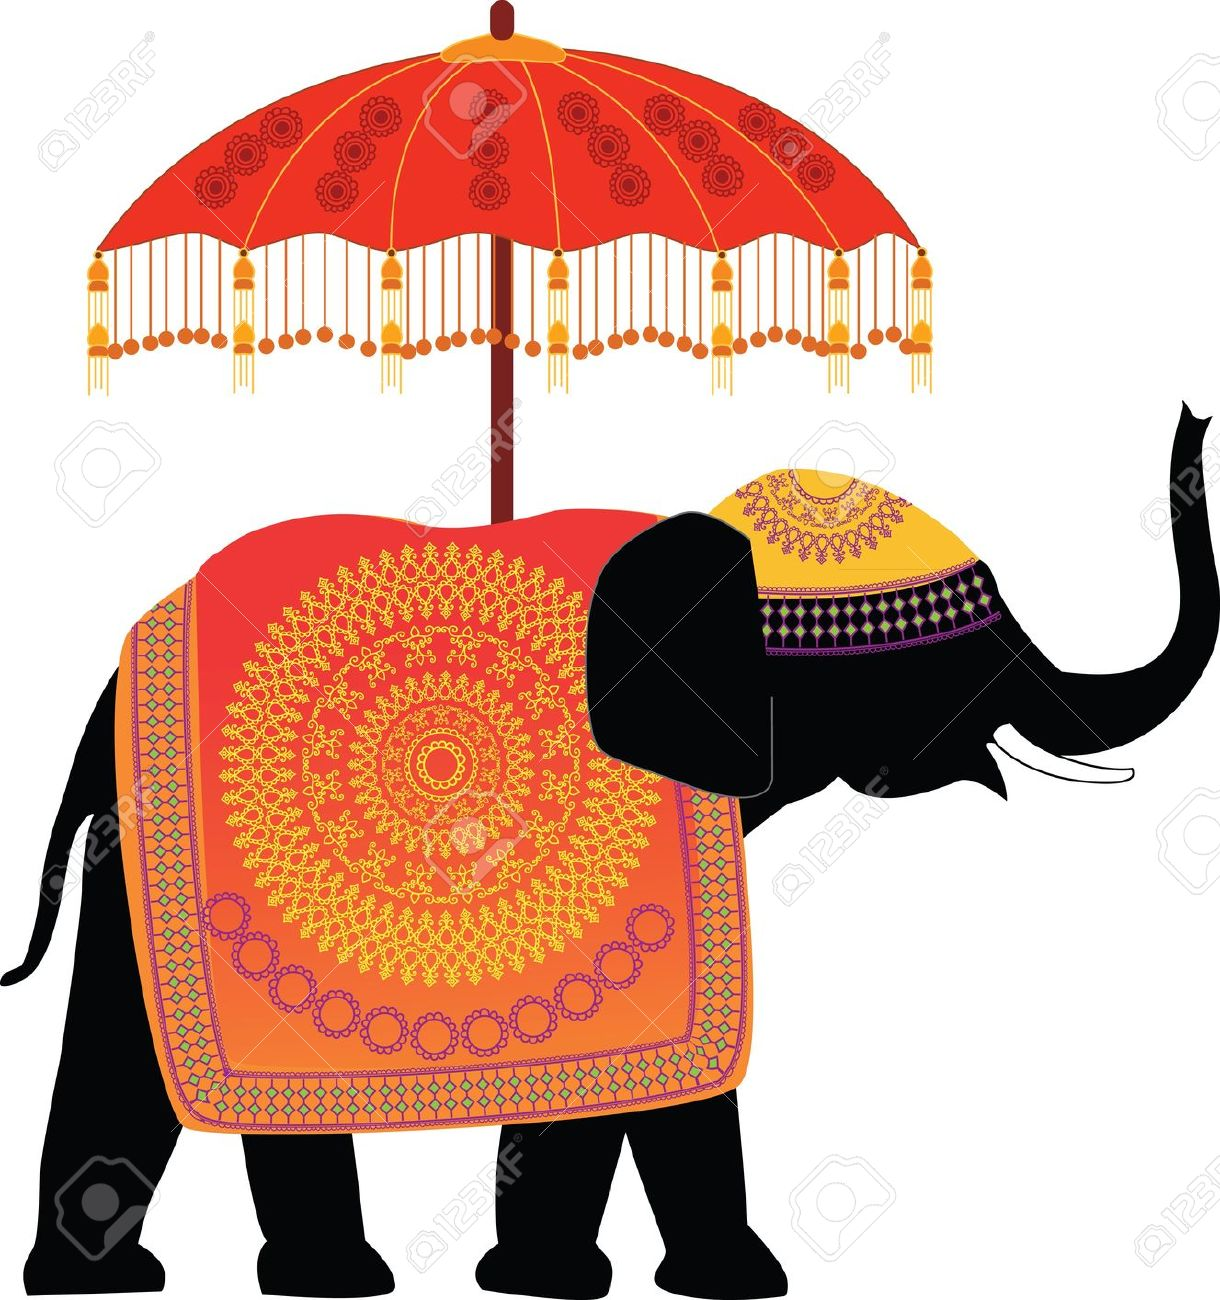 Asian Elephant clipart circus elephant Search Pinterest indian  Google